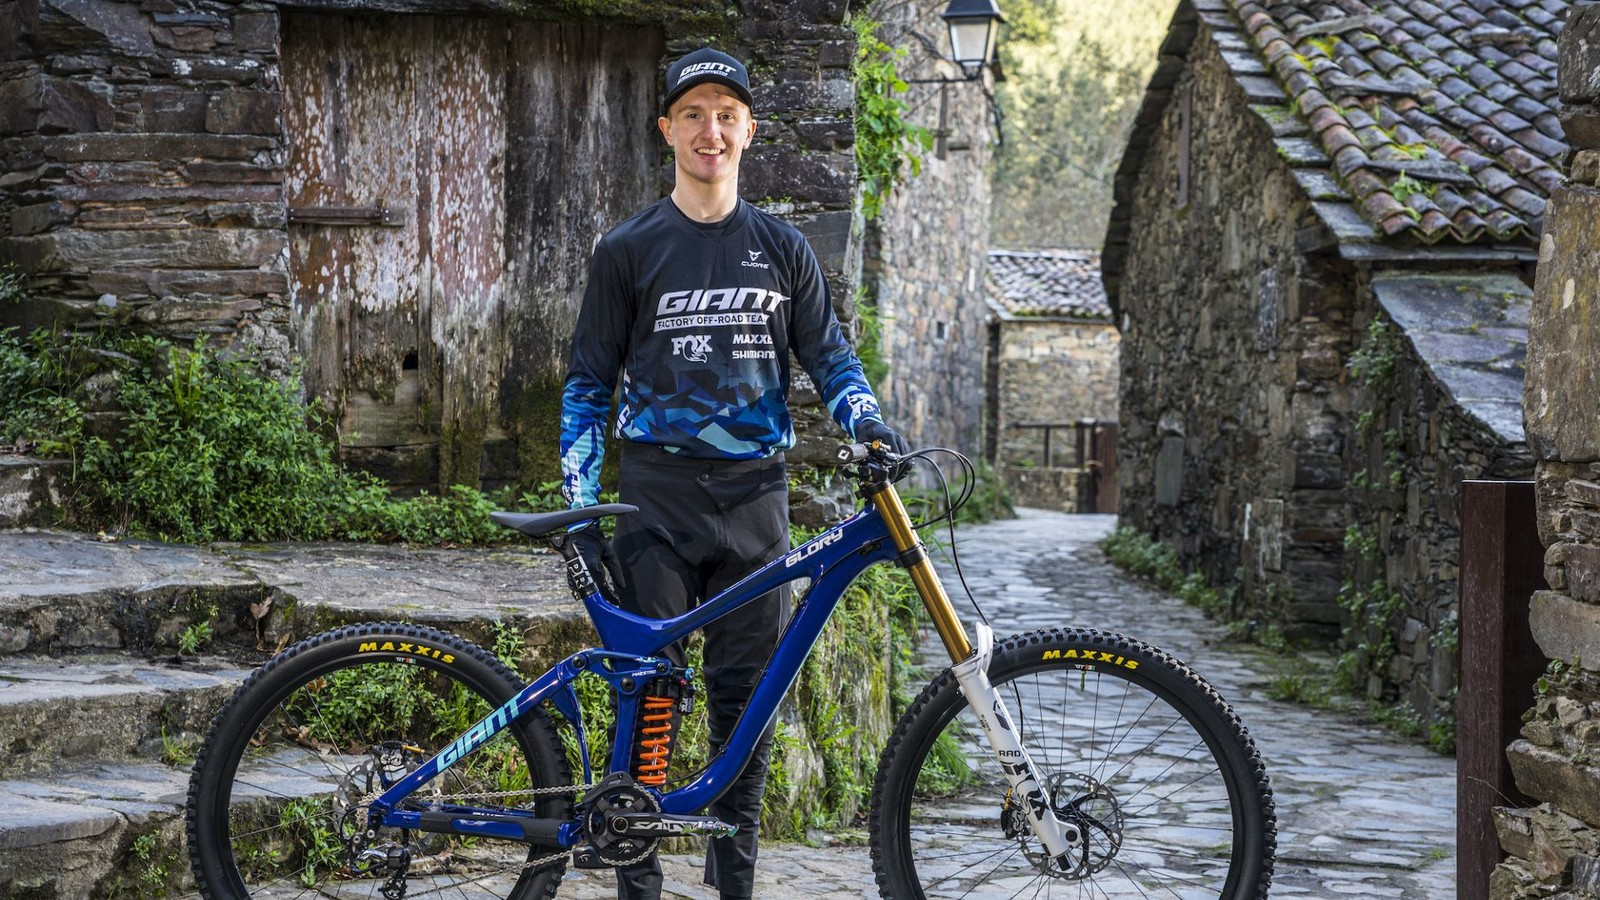 2020 GIANT FACTORY OFF-ROAD TEAM STRENGTHENS WITH MIX OF VETERANS, NEW FACES AND EXPANDED XC SQUAD